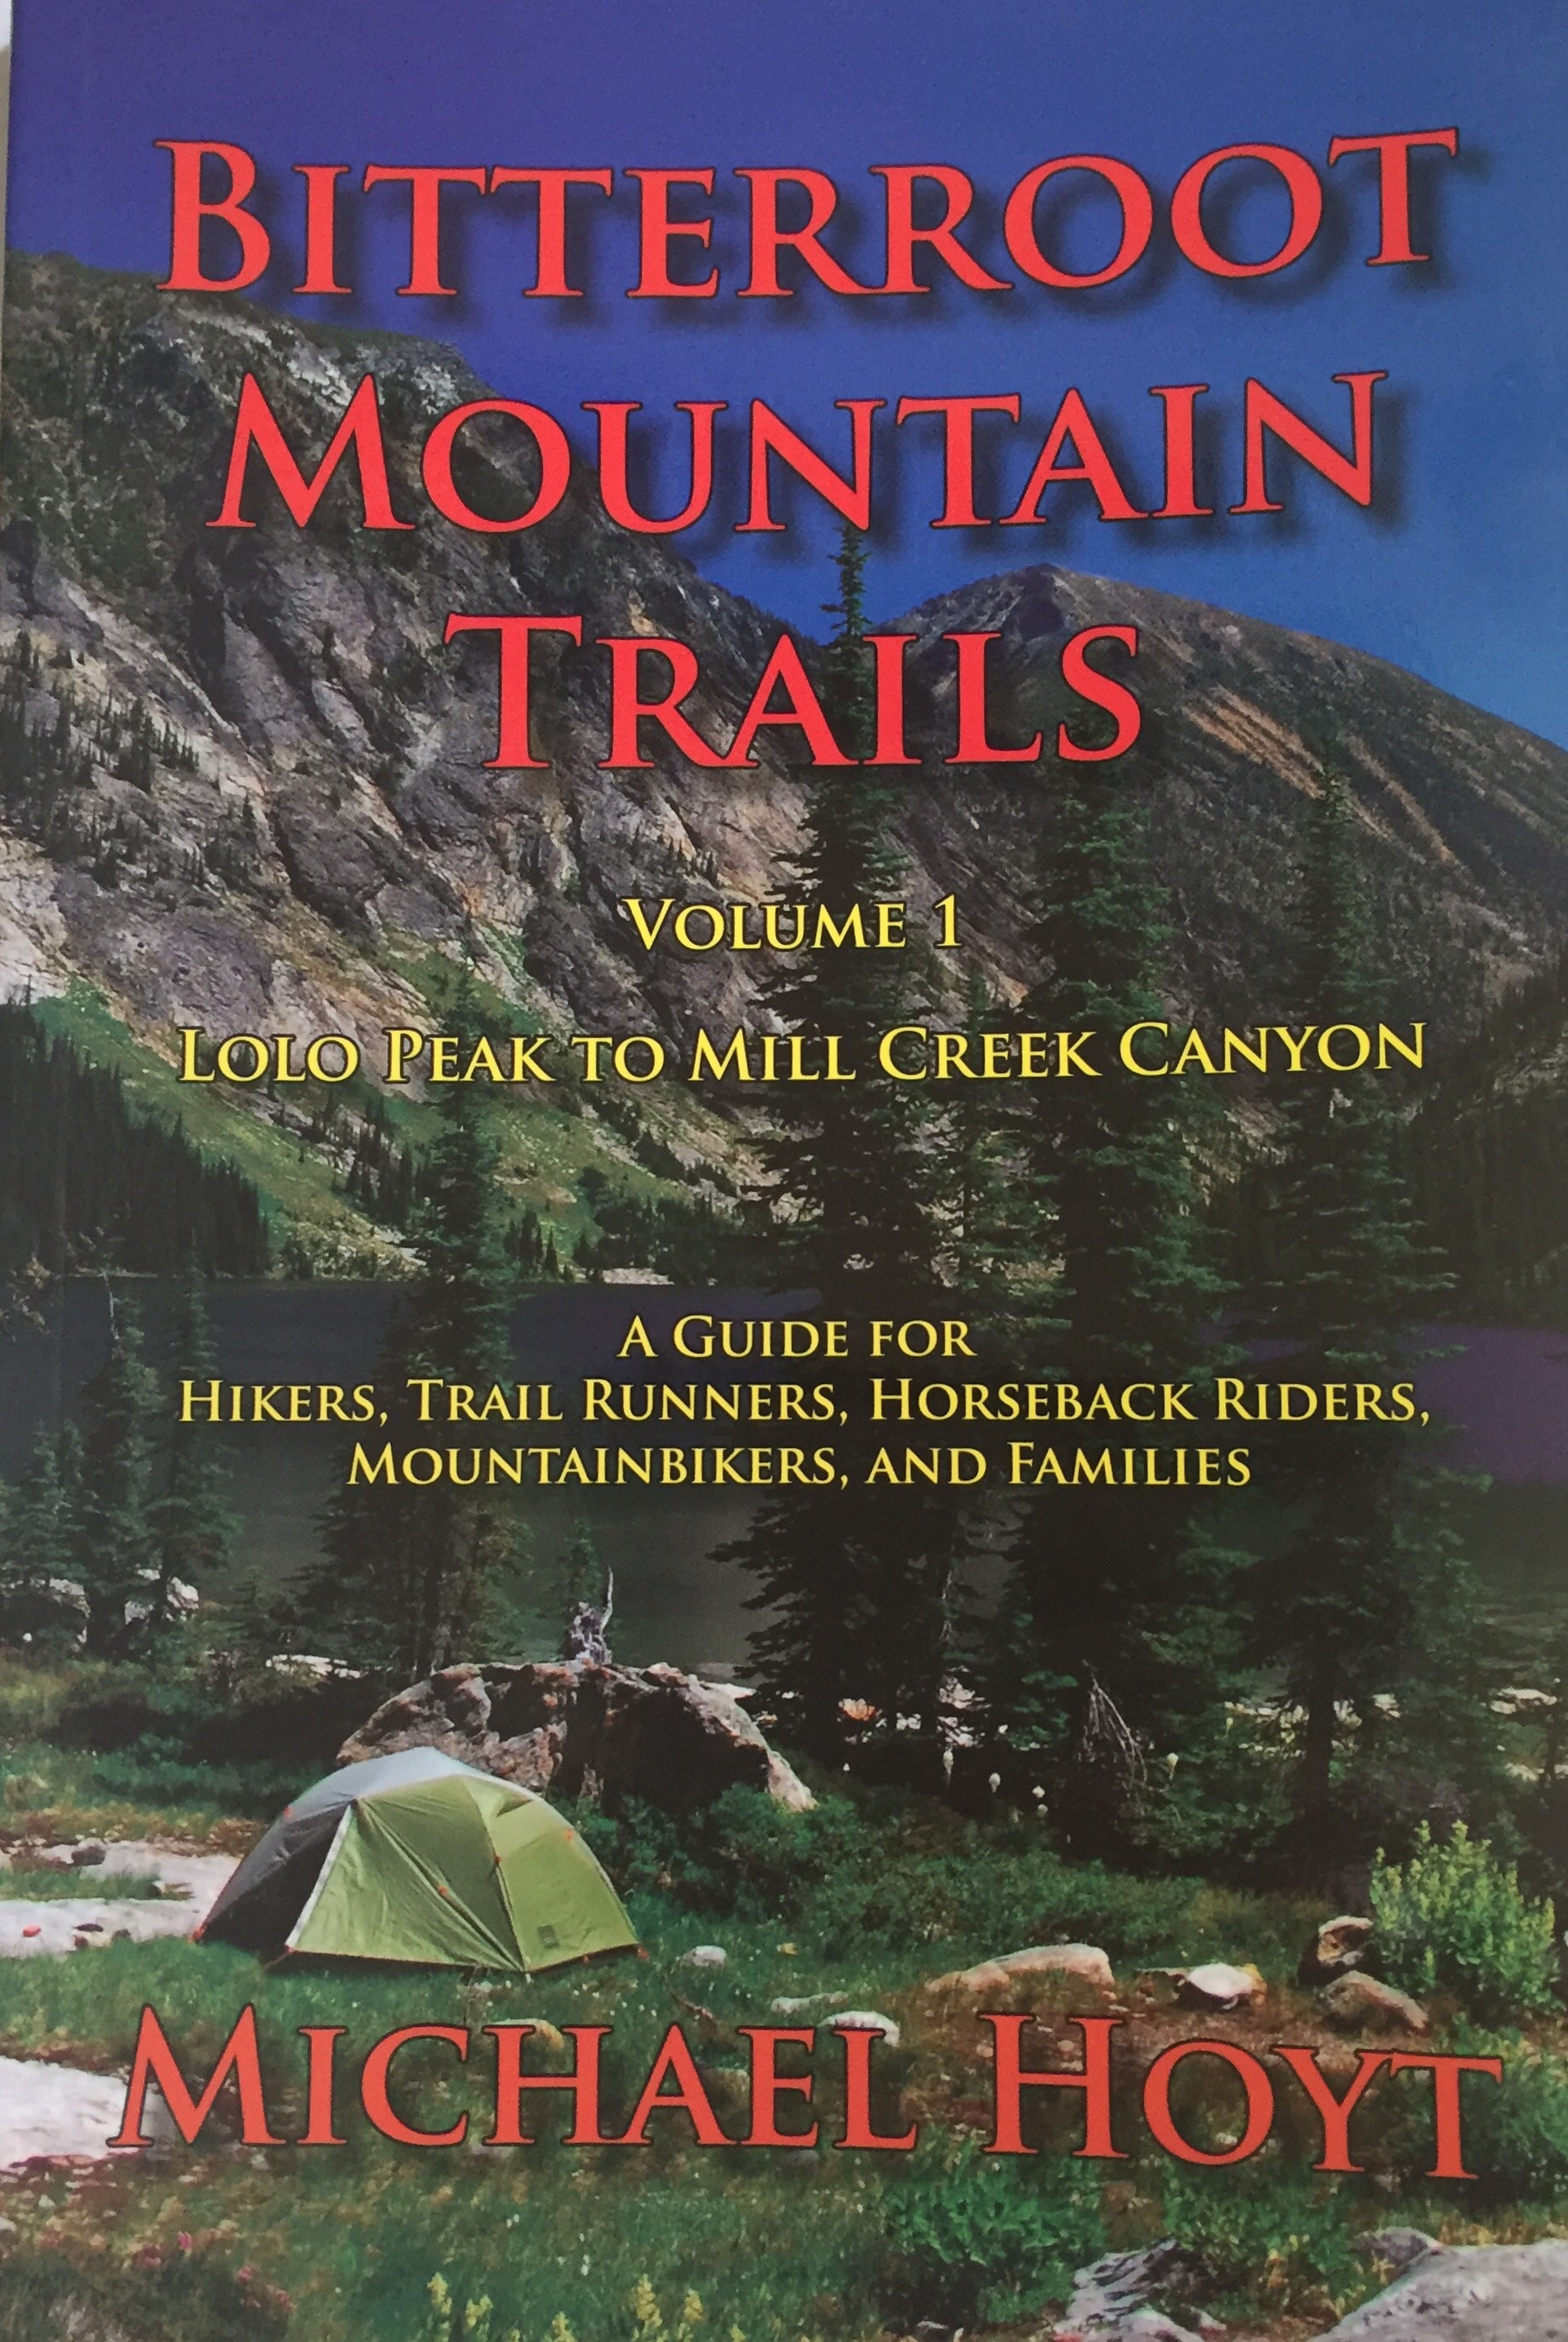 Bitterroot Mountain Trails, Volume I